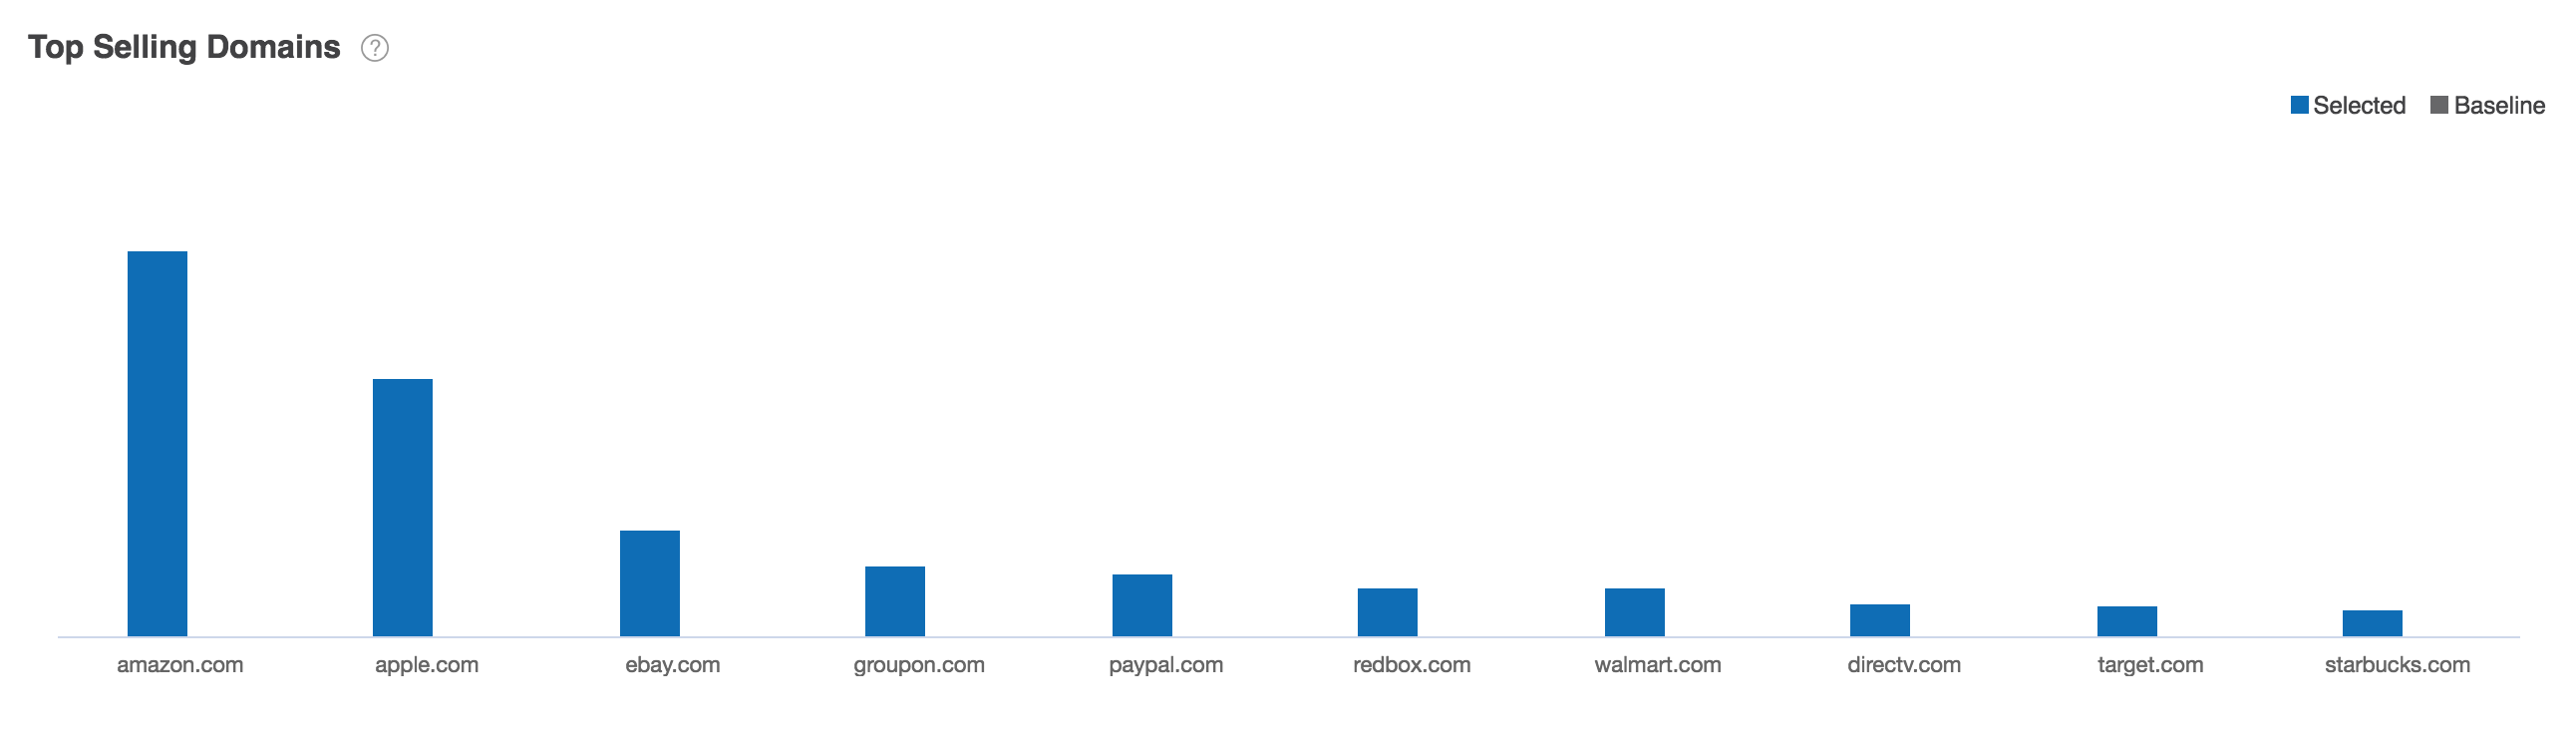 Top Selling Domains